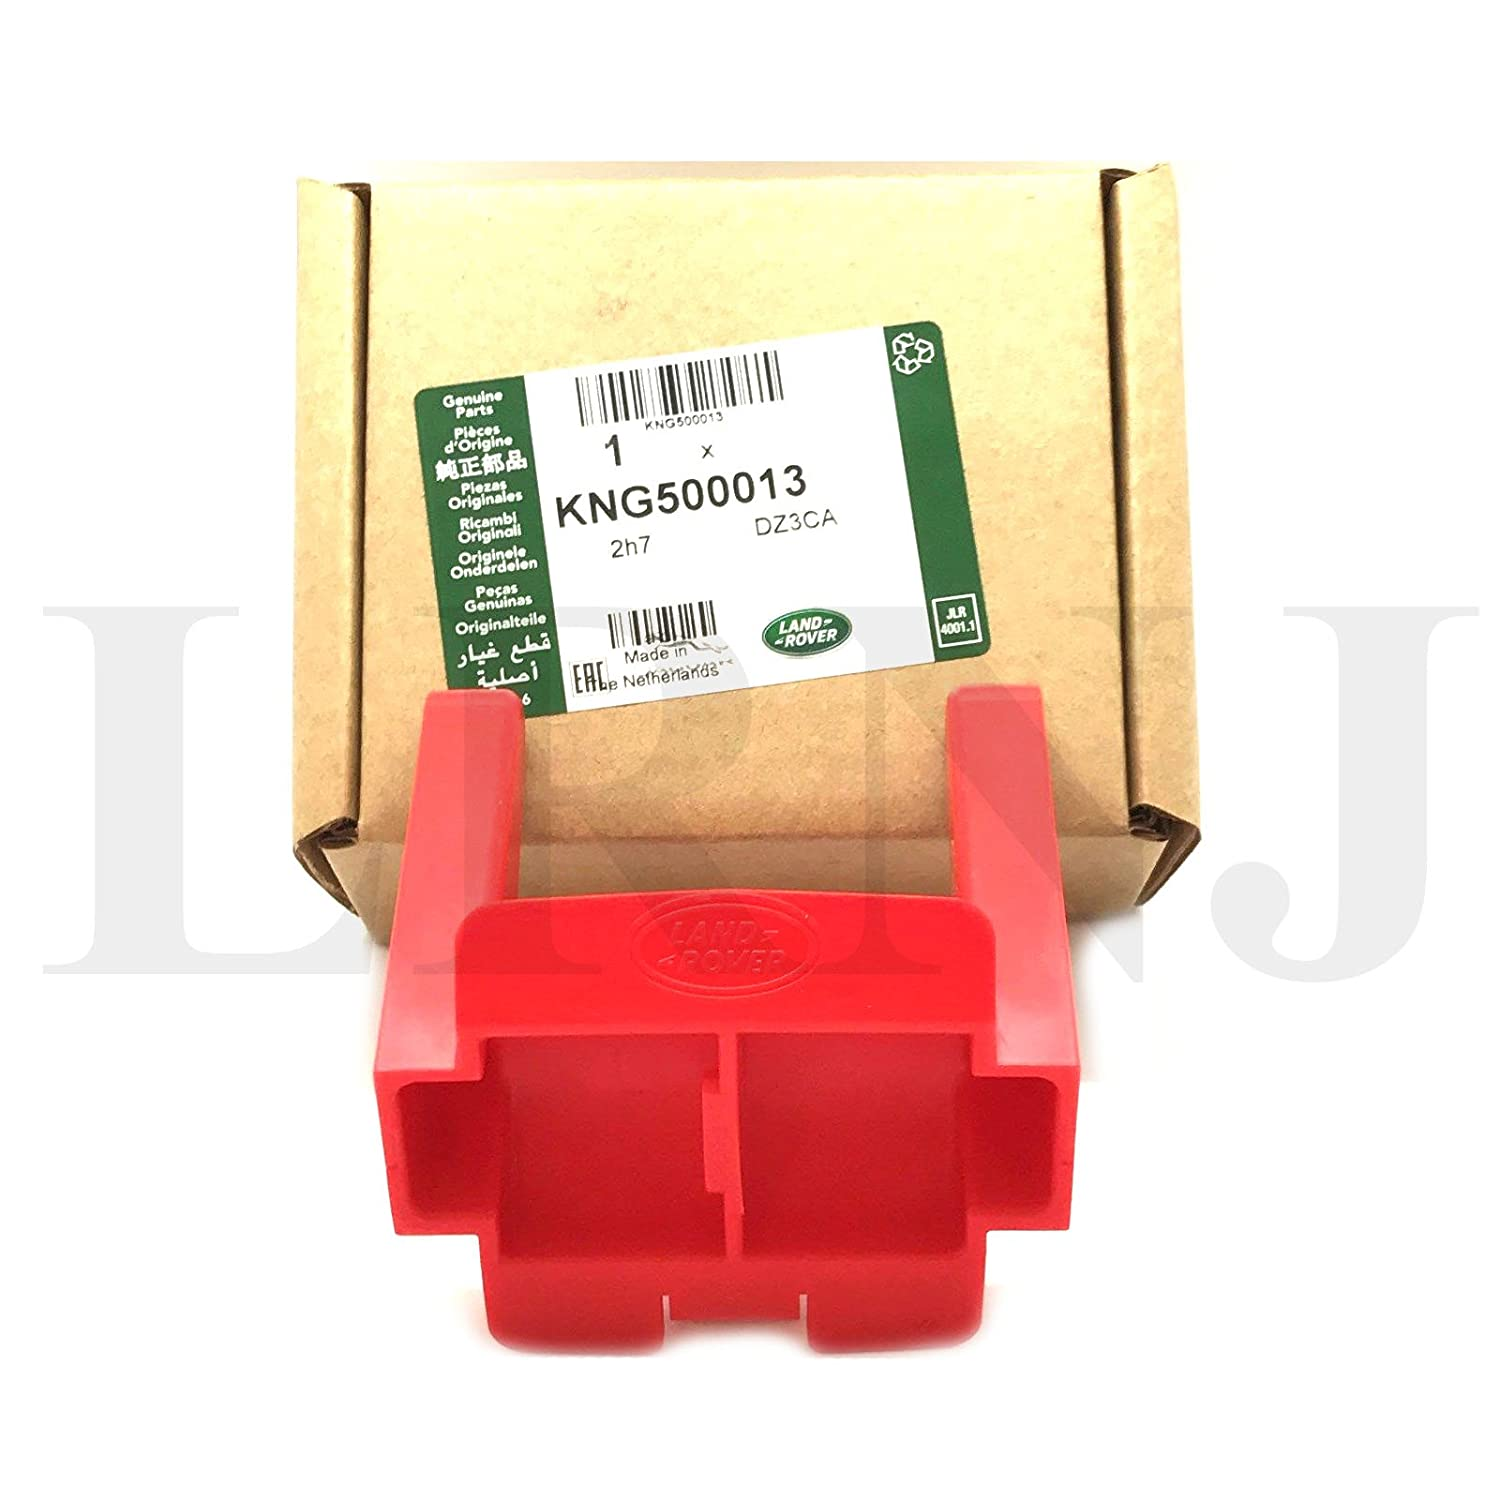 Land Rover New Genuine Tow Bar Protective Blanking Plug Cover KNG500013 KNG500013 (LR)